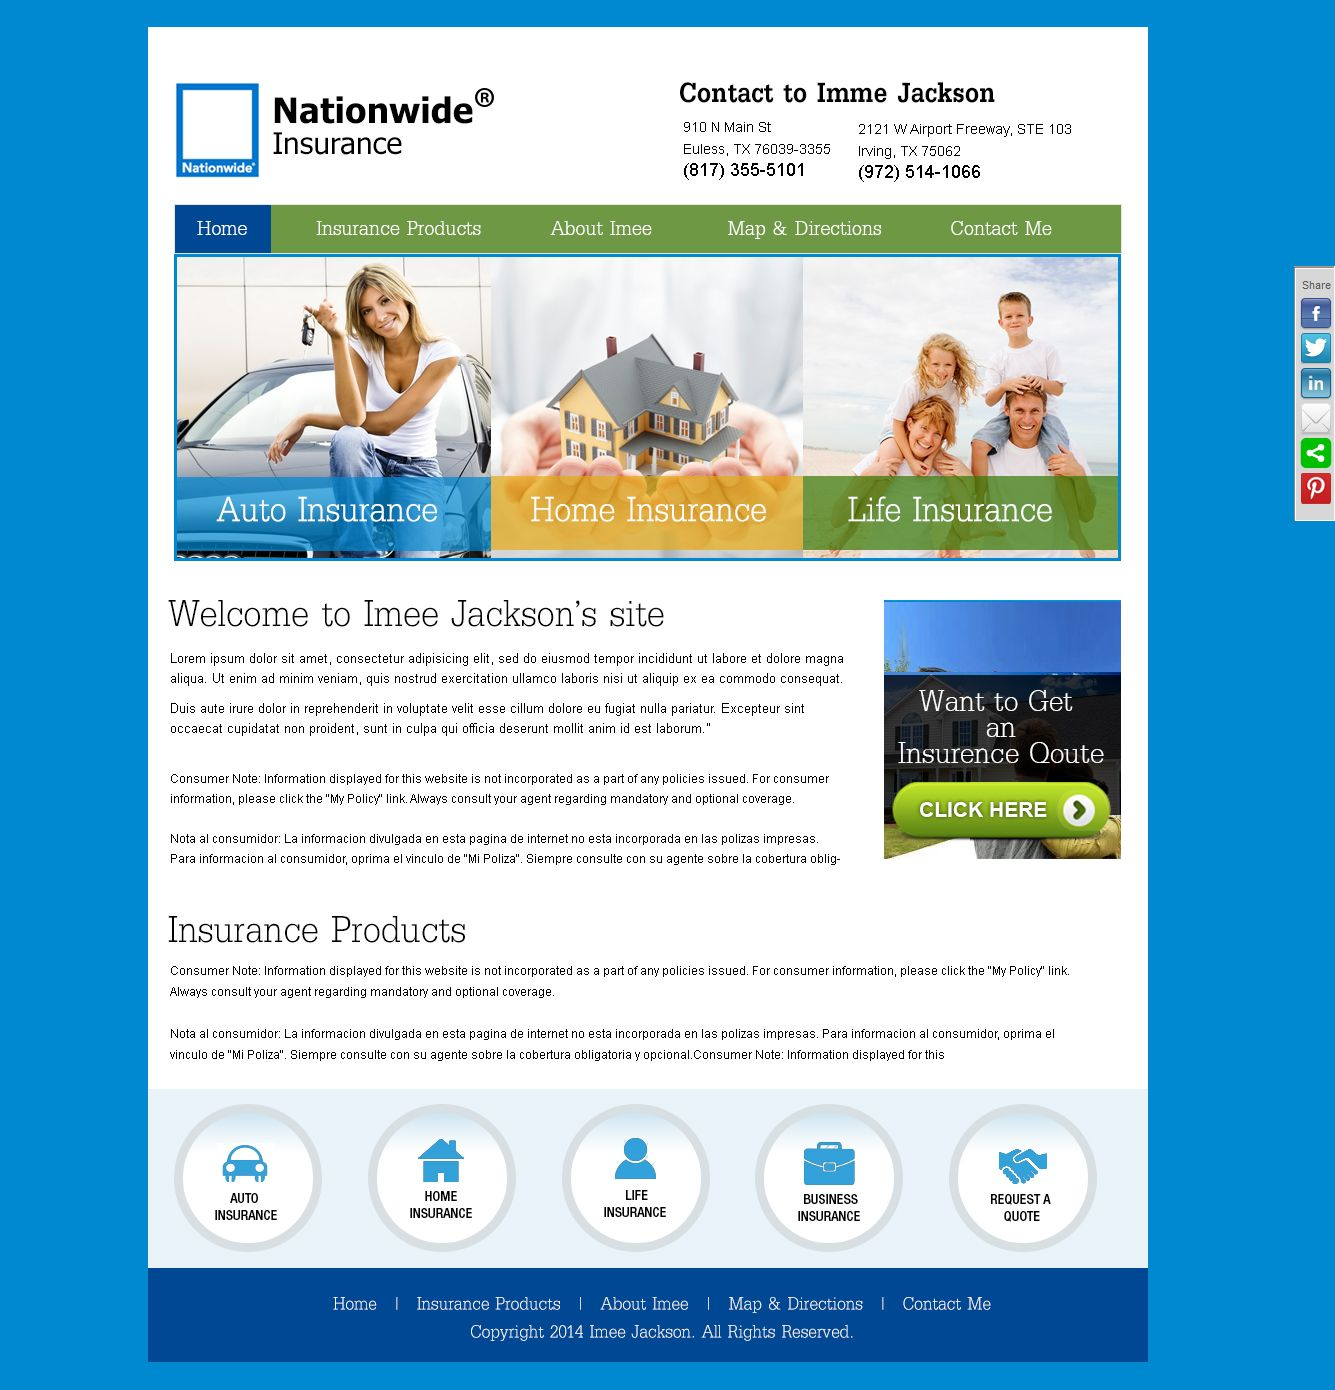 Designs Awesome Templates Creative Designs Photoshop Car Insurance Home Insurance Photoshop